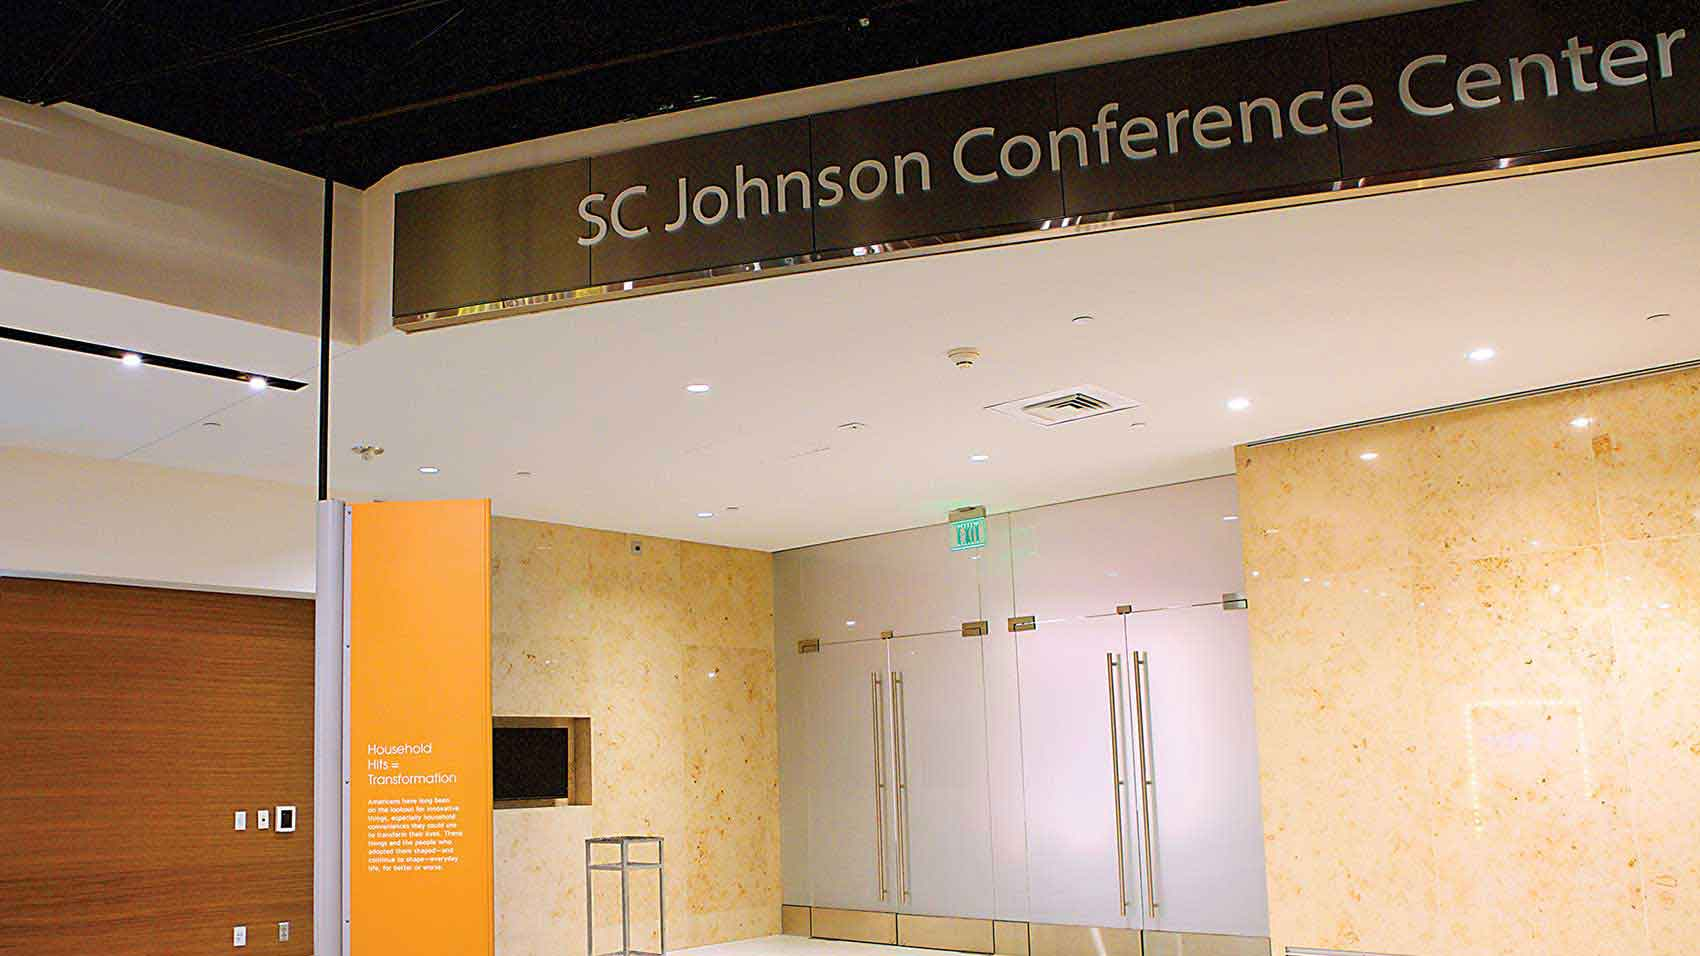 Centrum konferencyjne SC Johnson w muzeum Smithsonian